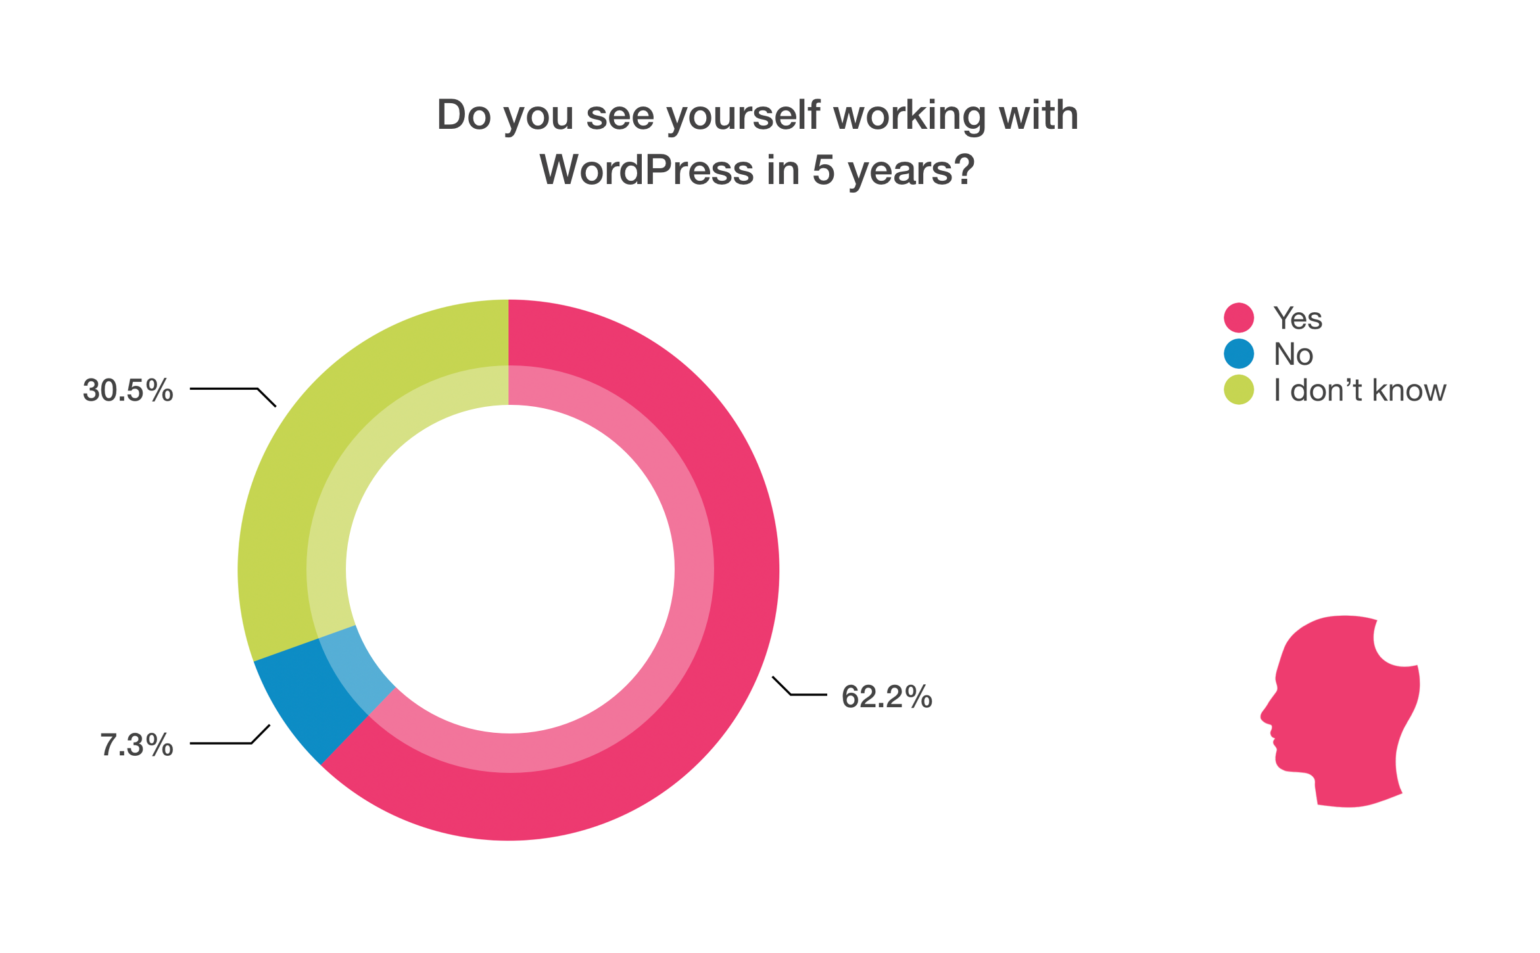 Future of WordPress chart